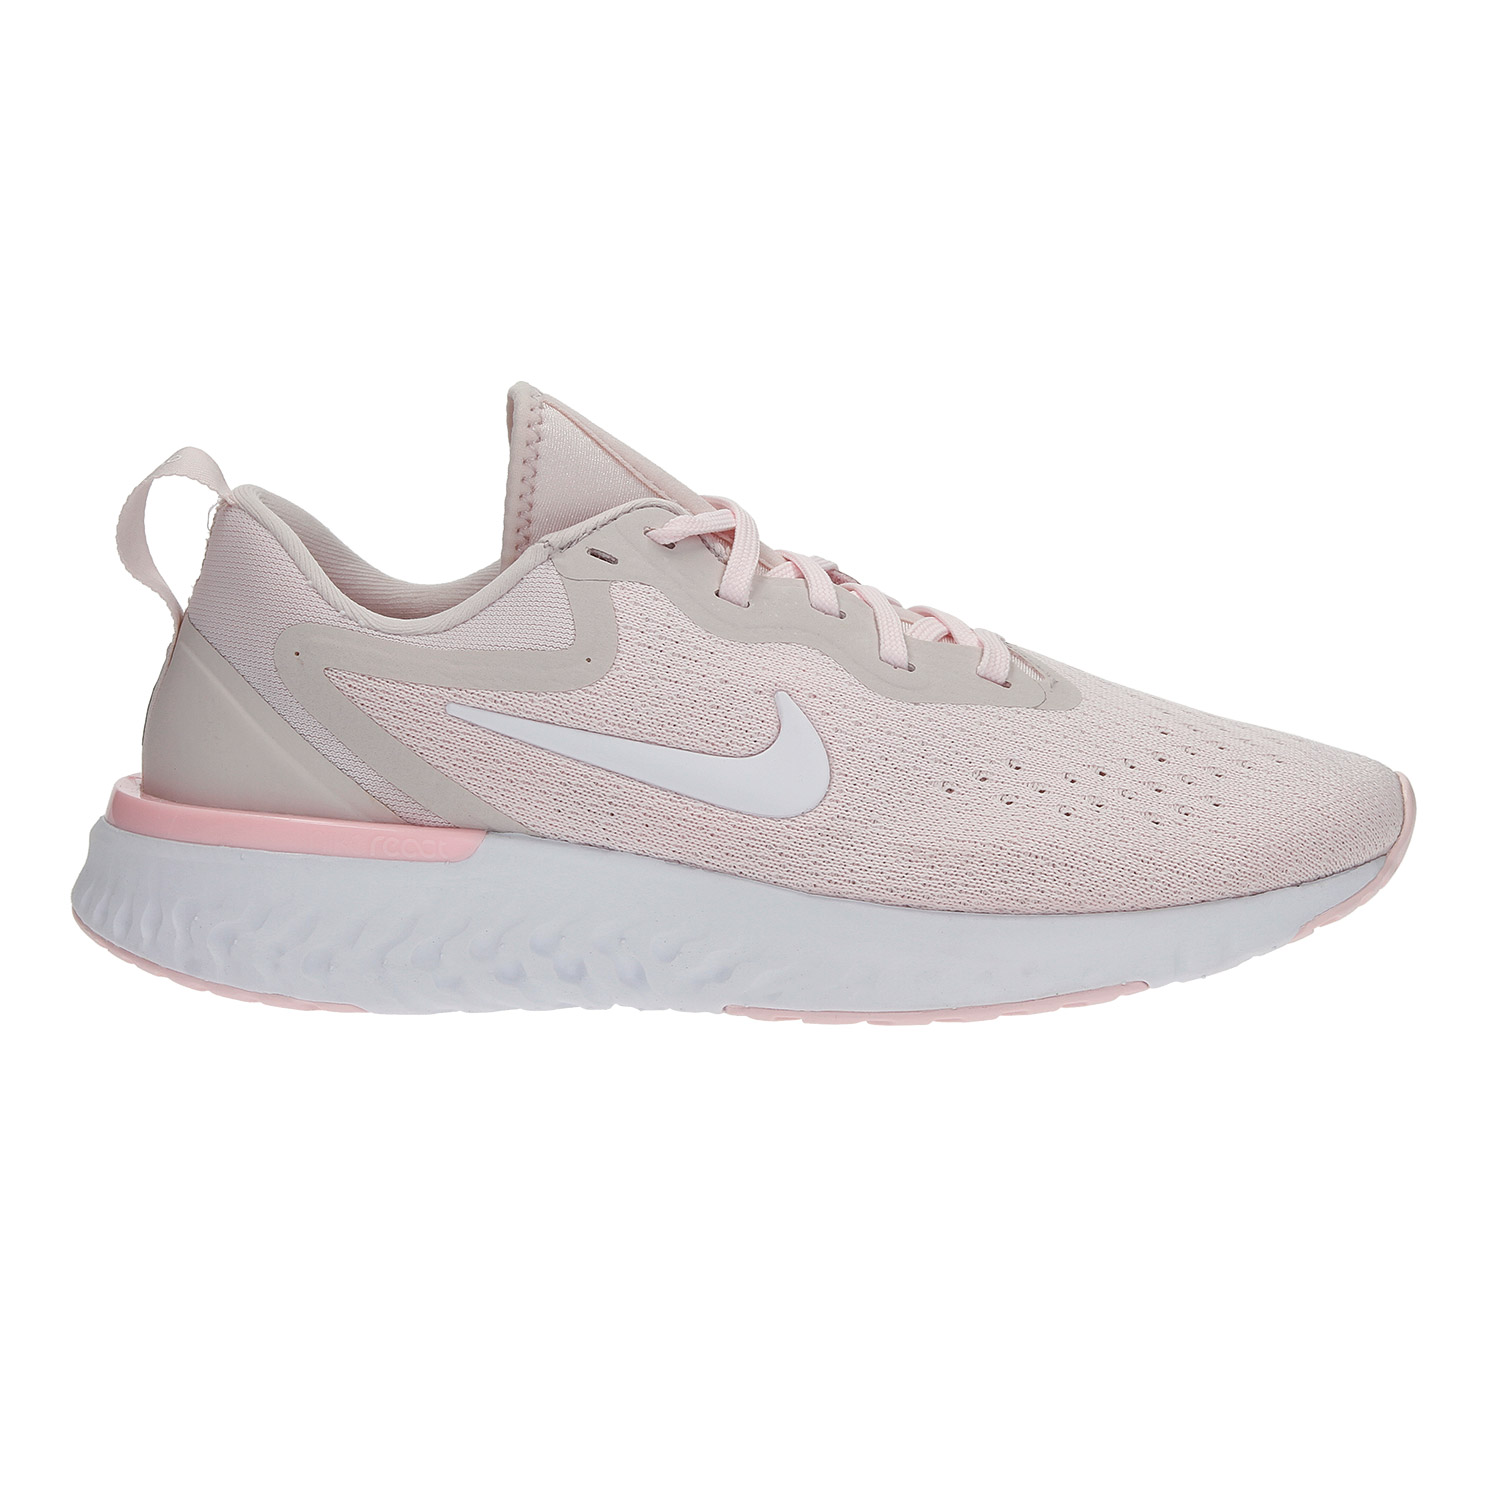 promo code 7264c 3335b Nike Odyssey React Womens Running Shoes  PinkWhite